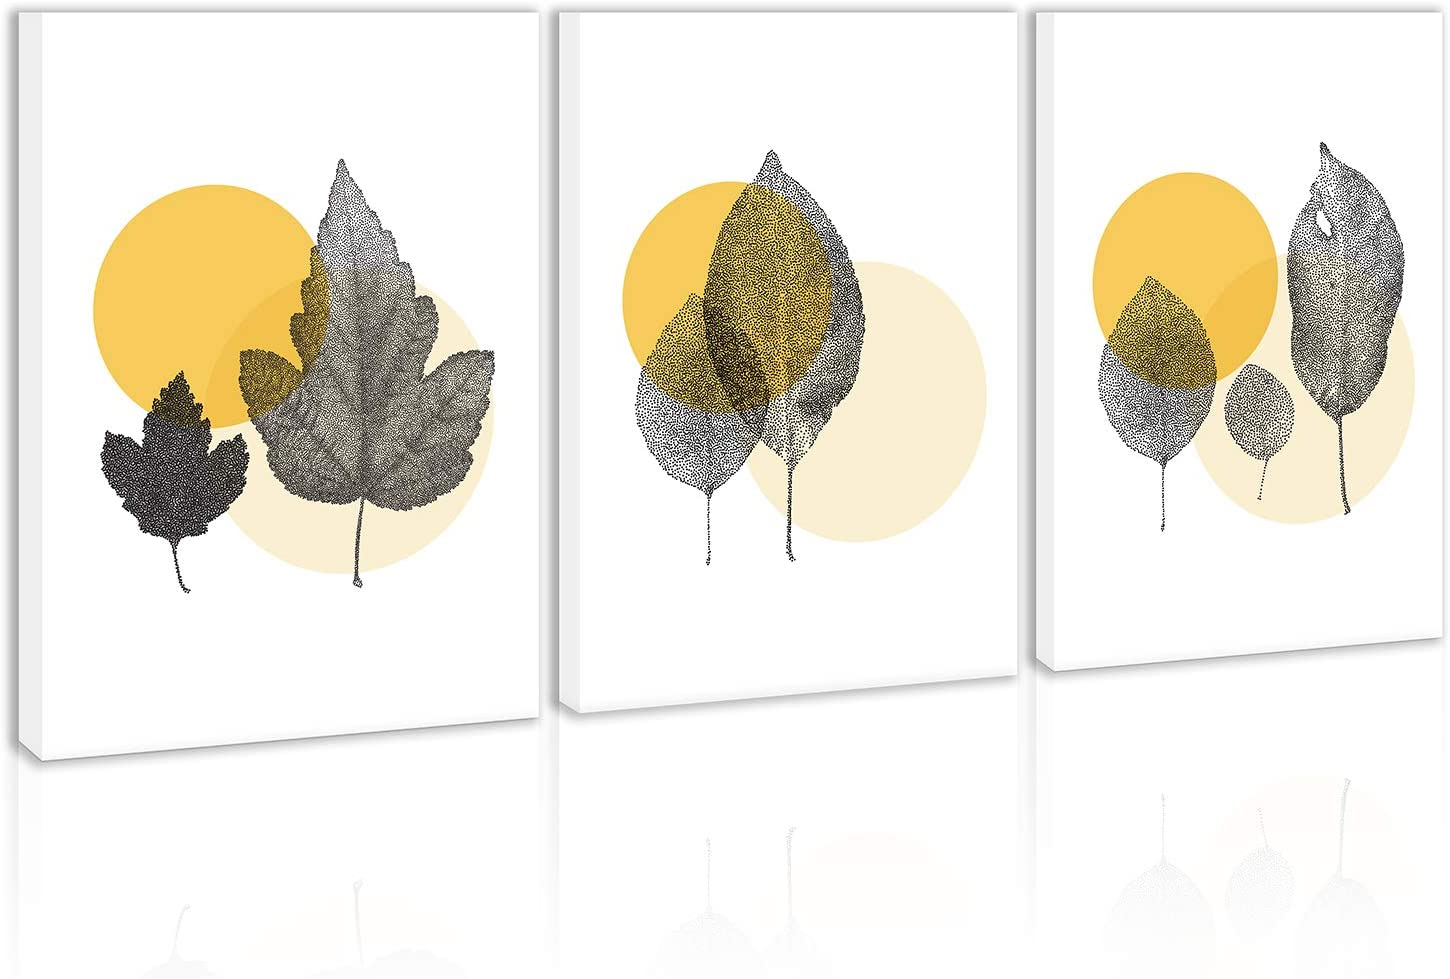 Tree Leaves Wall Art Decor White Background Modern Abstract Artwork Canvas Painting Prints Pictures Home Decor for Living Room Dining Room Bedroom